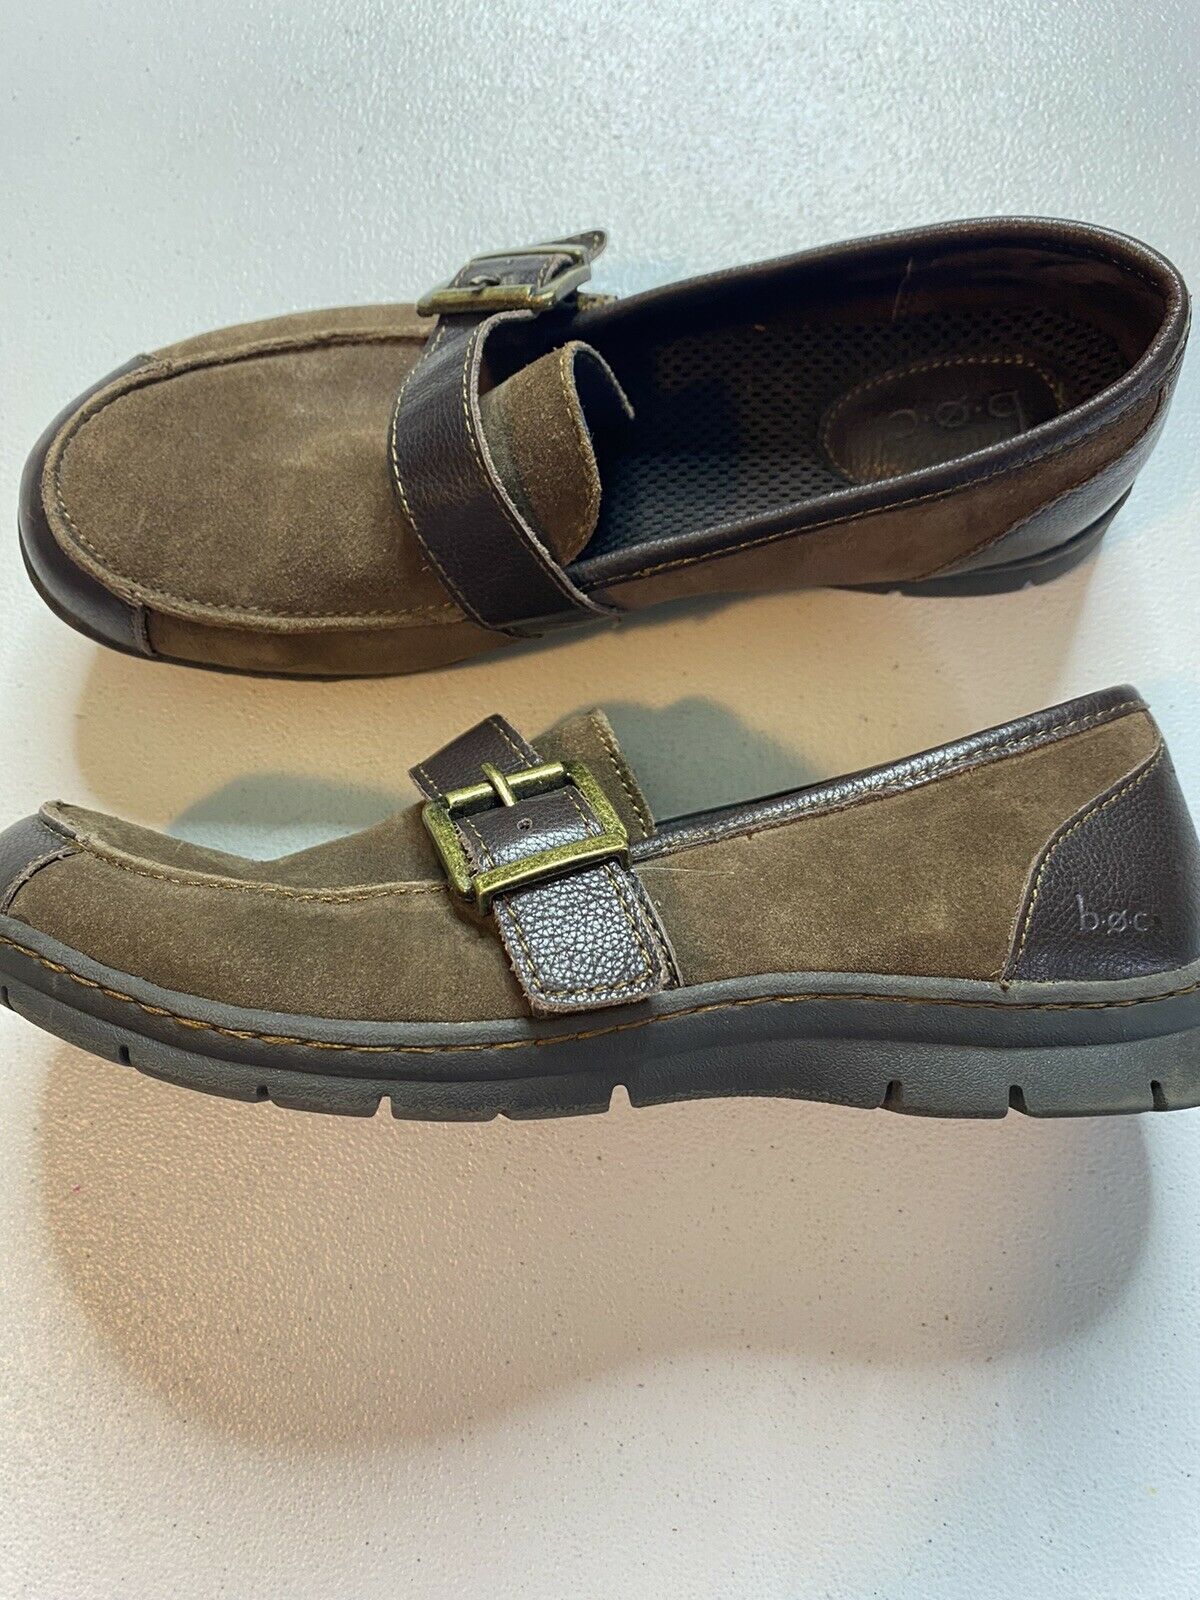 BOC leather loafer size 8 brown